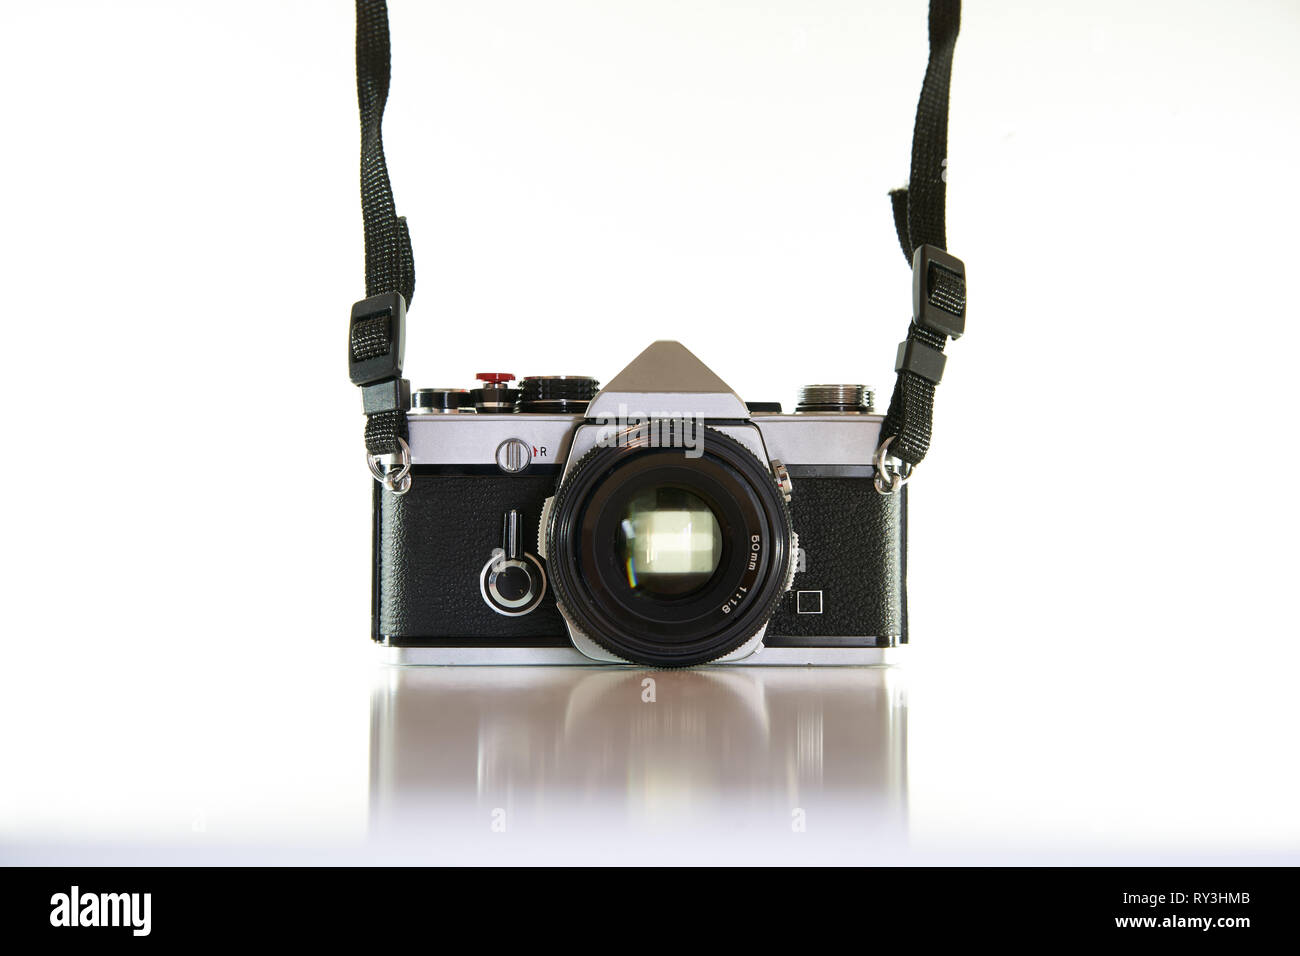 London, UK - August, 2018. Vintage film slr camera with a white background. - Stock Image